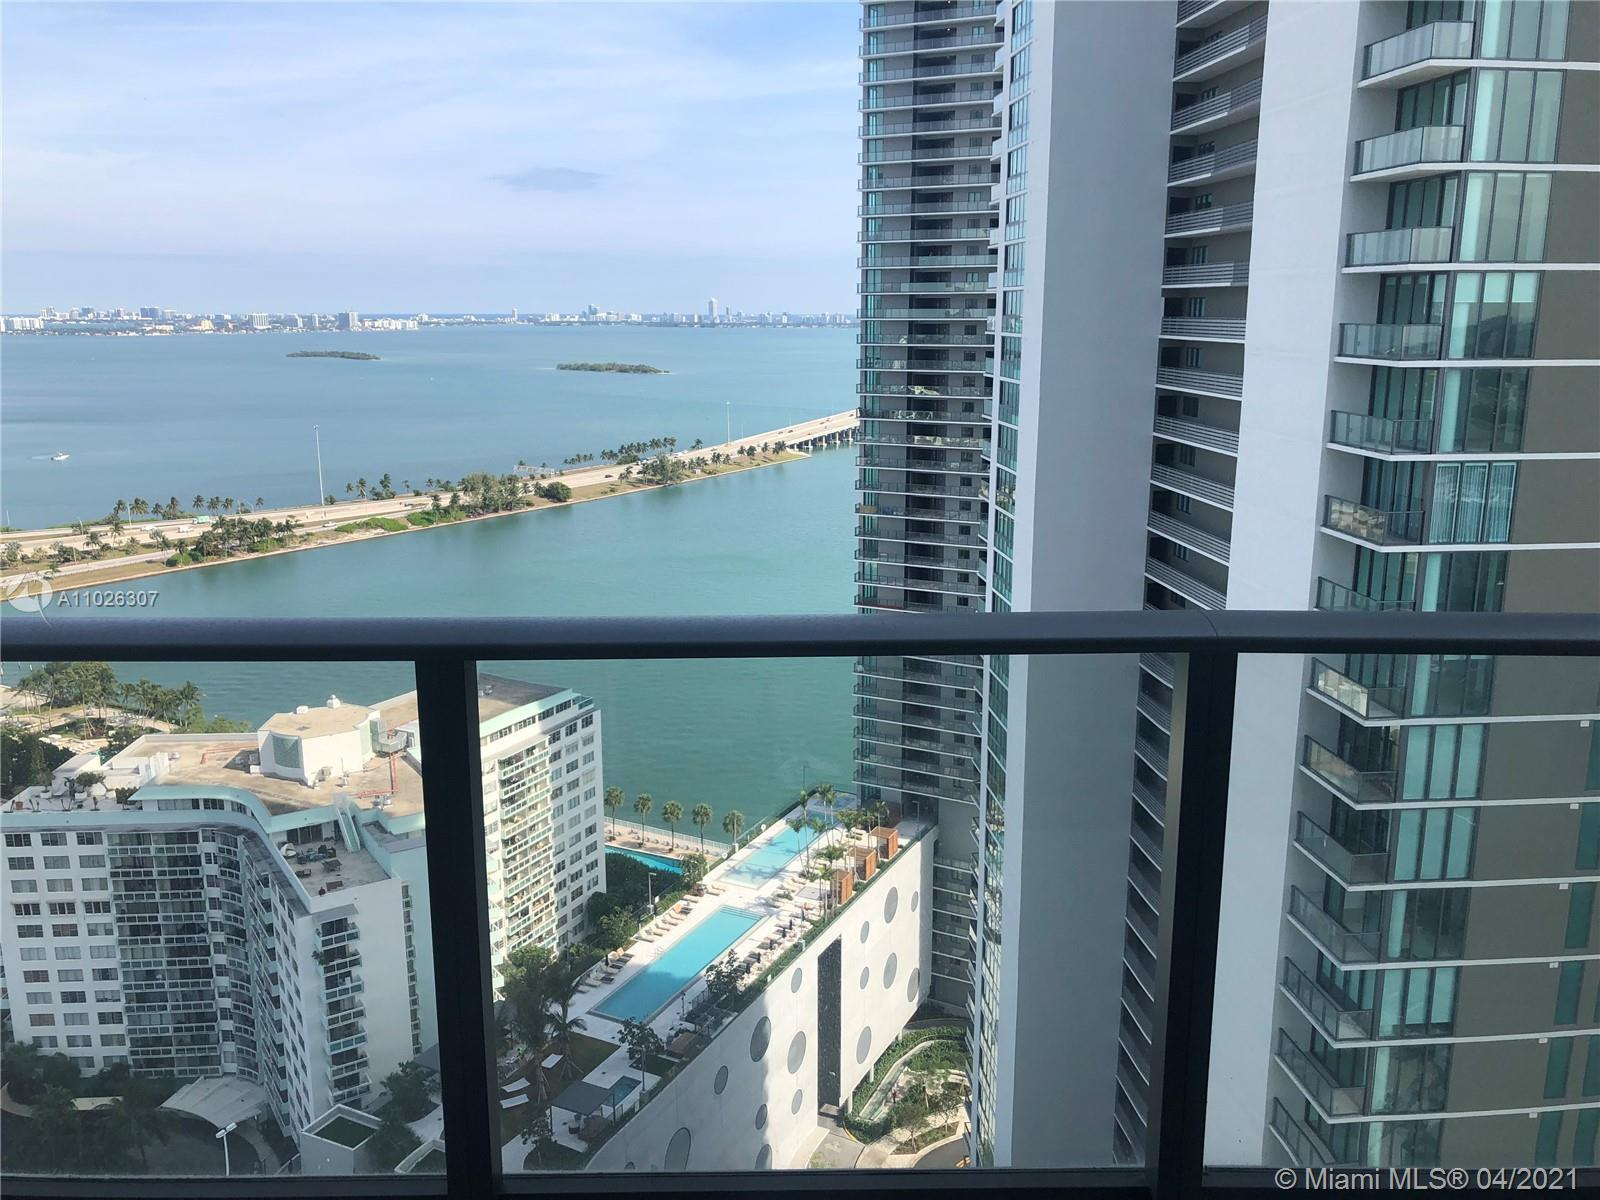 BEAUTIFUL VIEW FROM THIS FURNISHED 1BED/1BATH AND GUEST BATH AT THE BRAND NEW LUXURY PARAISO BAYVIEW